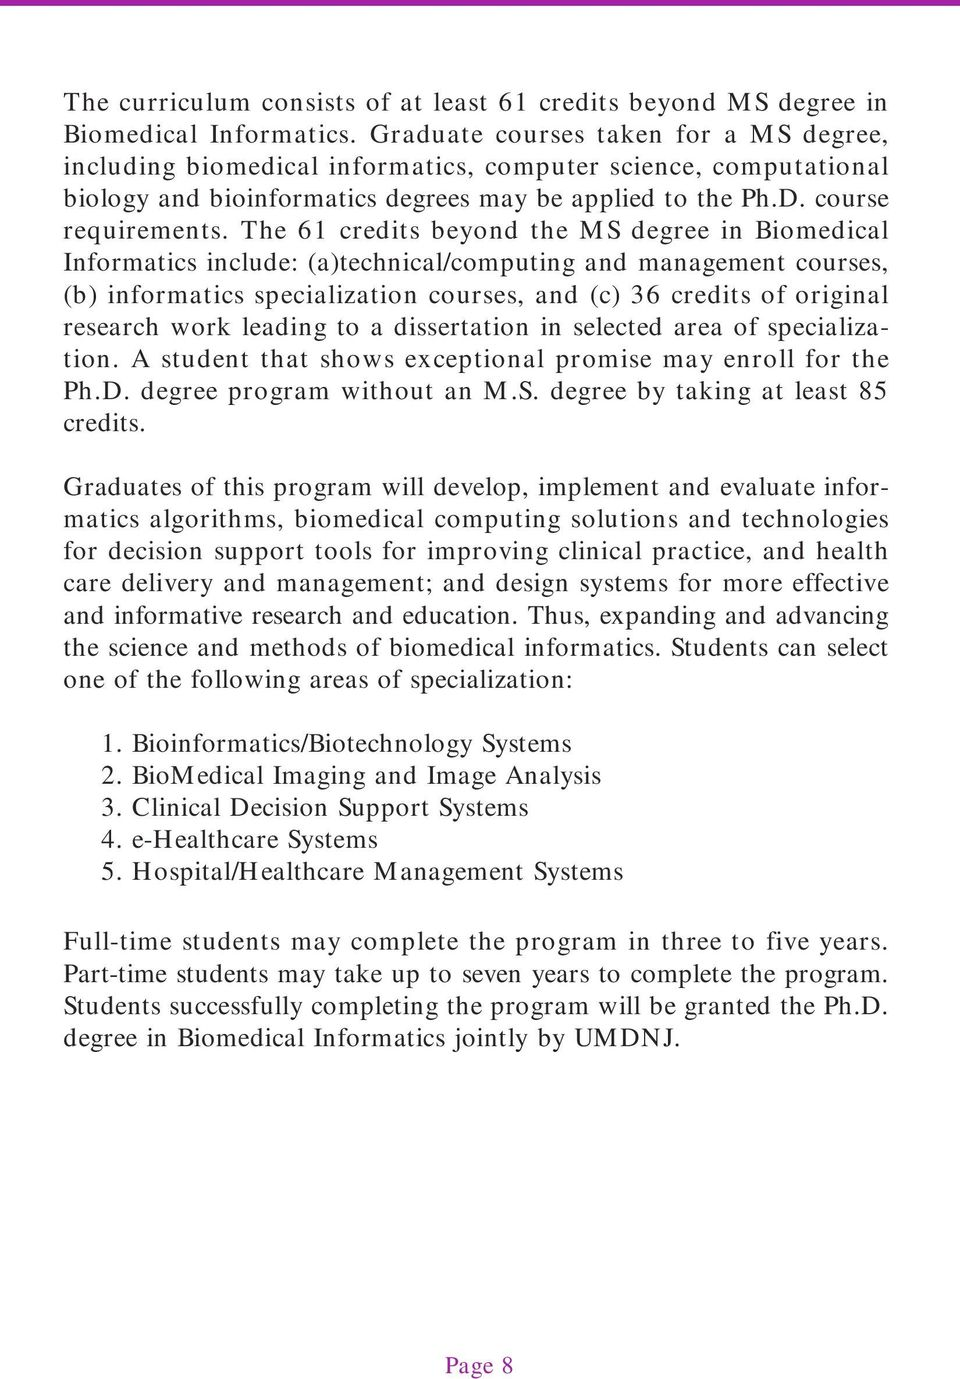 The 61 credits beyond the MS degree in Biomedical Informatics include: (a)technical/computing and management courses, (b) informatics specialization courses, and (c) 36 credits of original research